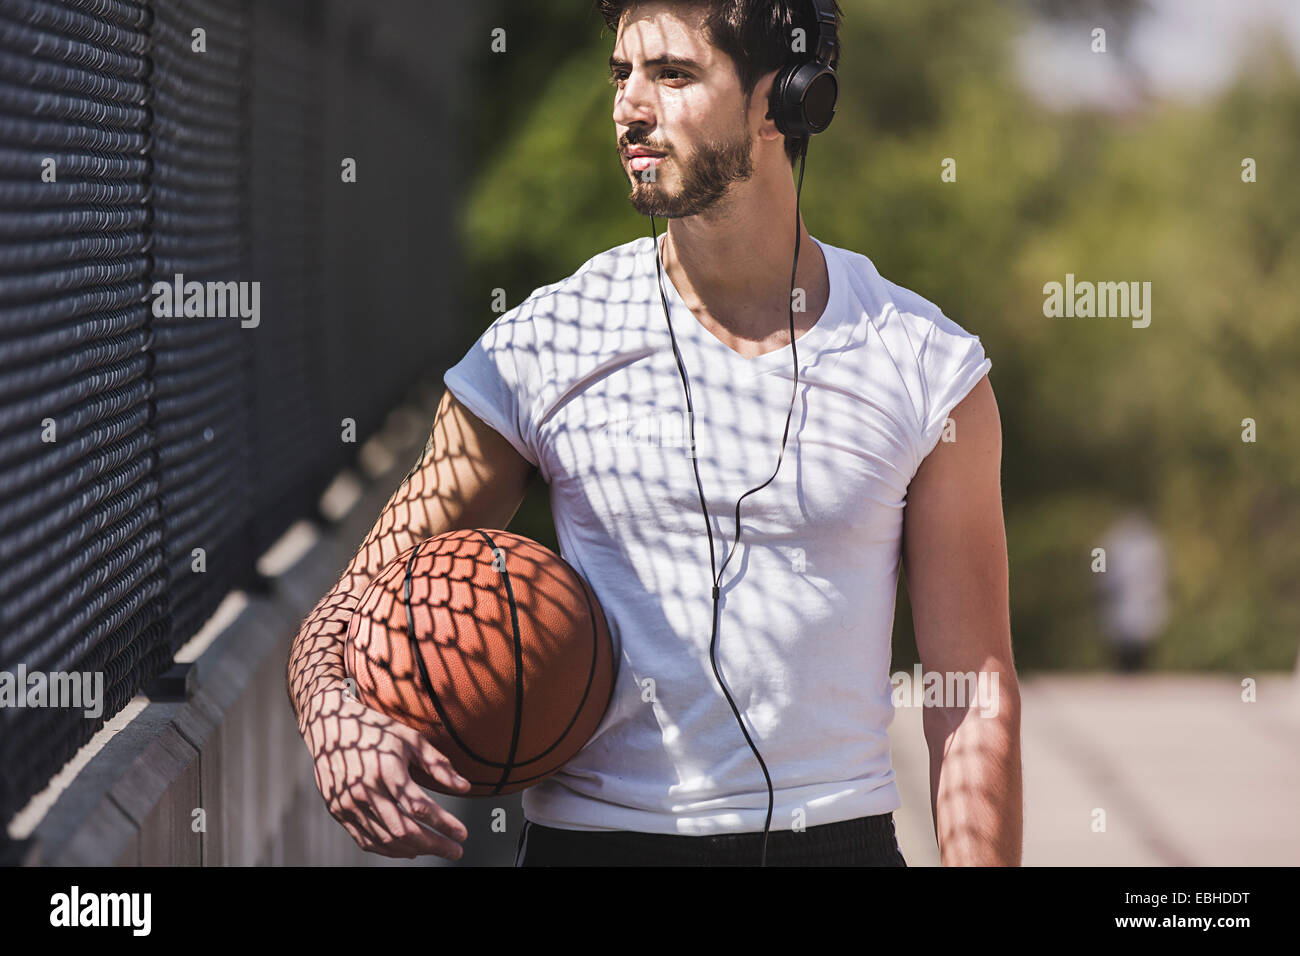 Young male basketball player walking over footbridge listening to headphones - Stock Image